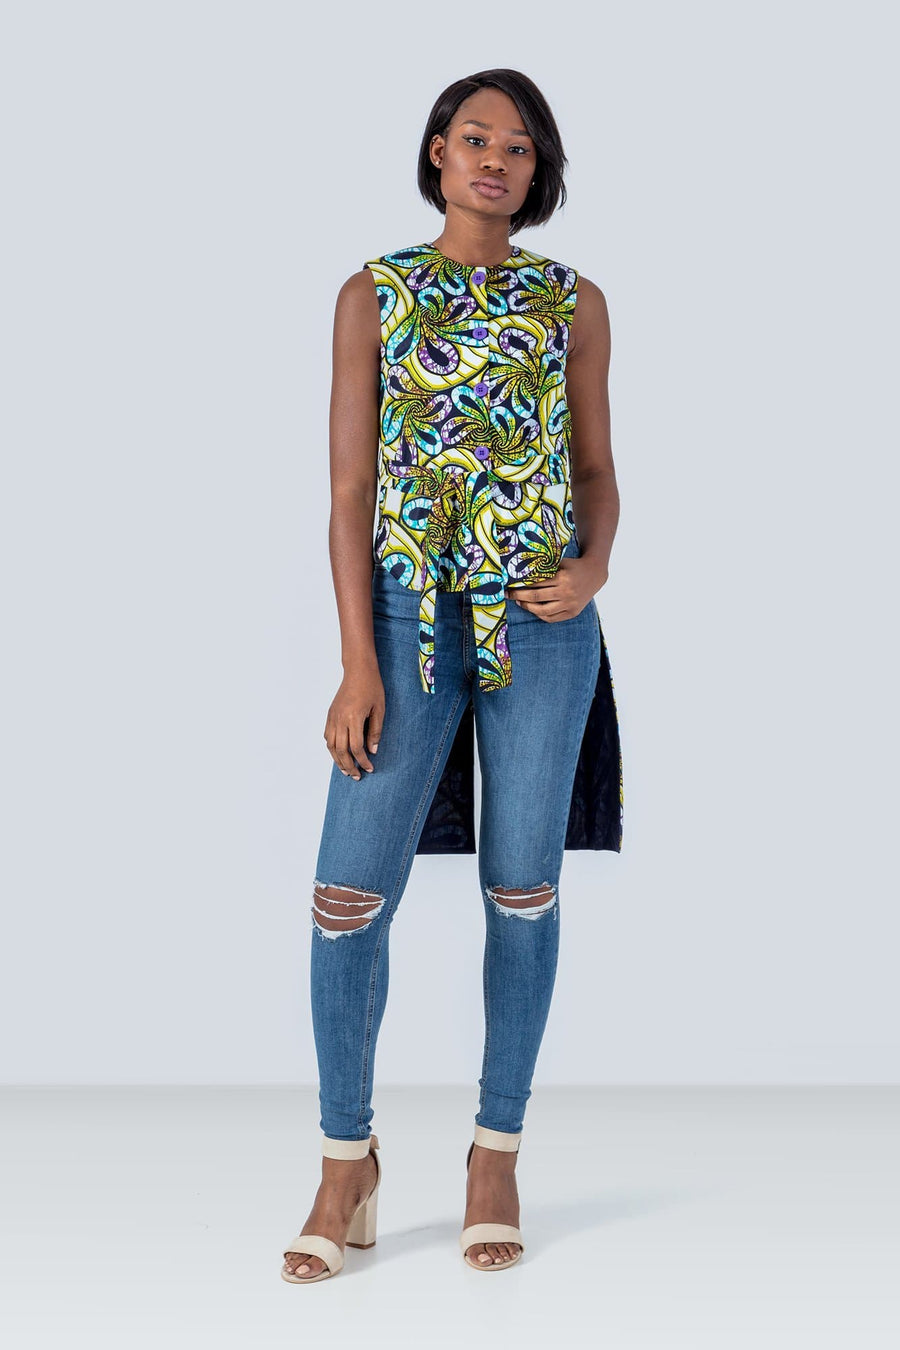 Sika'a Long Back Sleeveless African Print Blouse